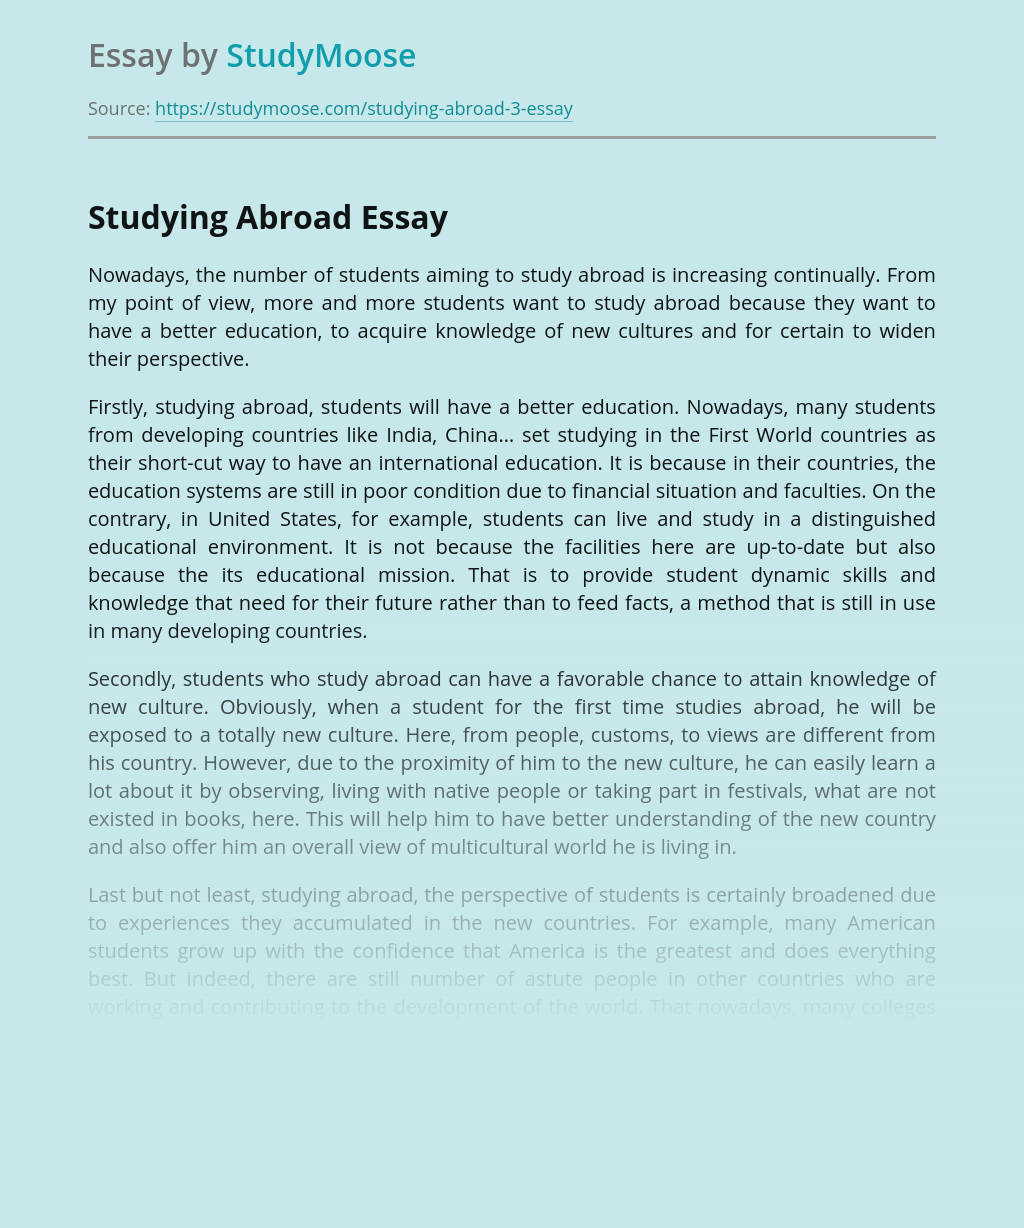 Studying Abroad: Perspectives for Students